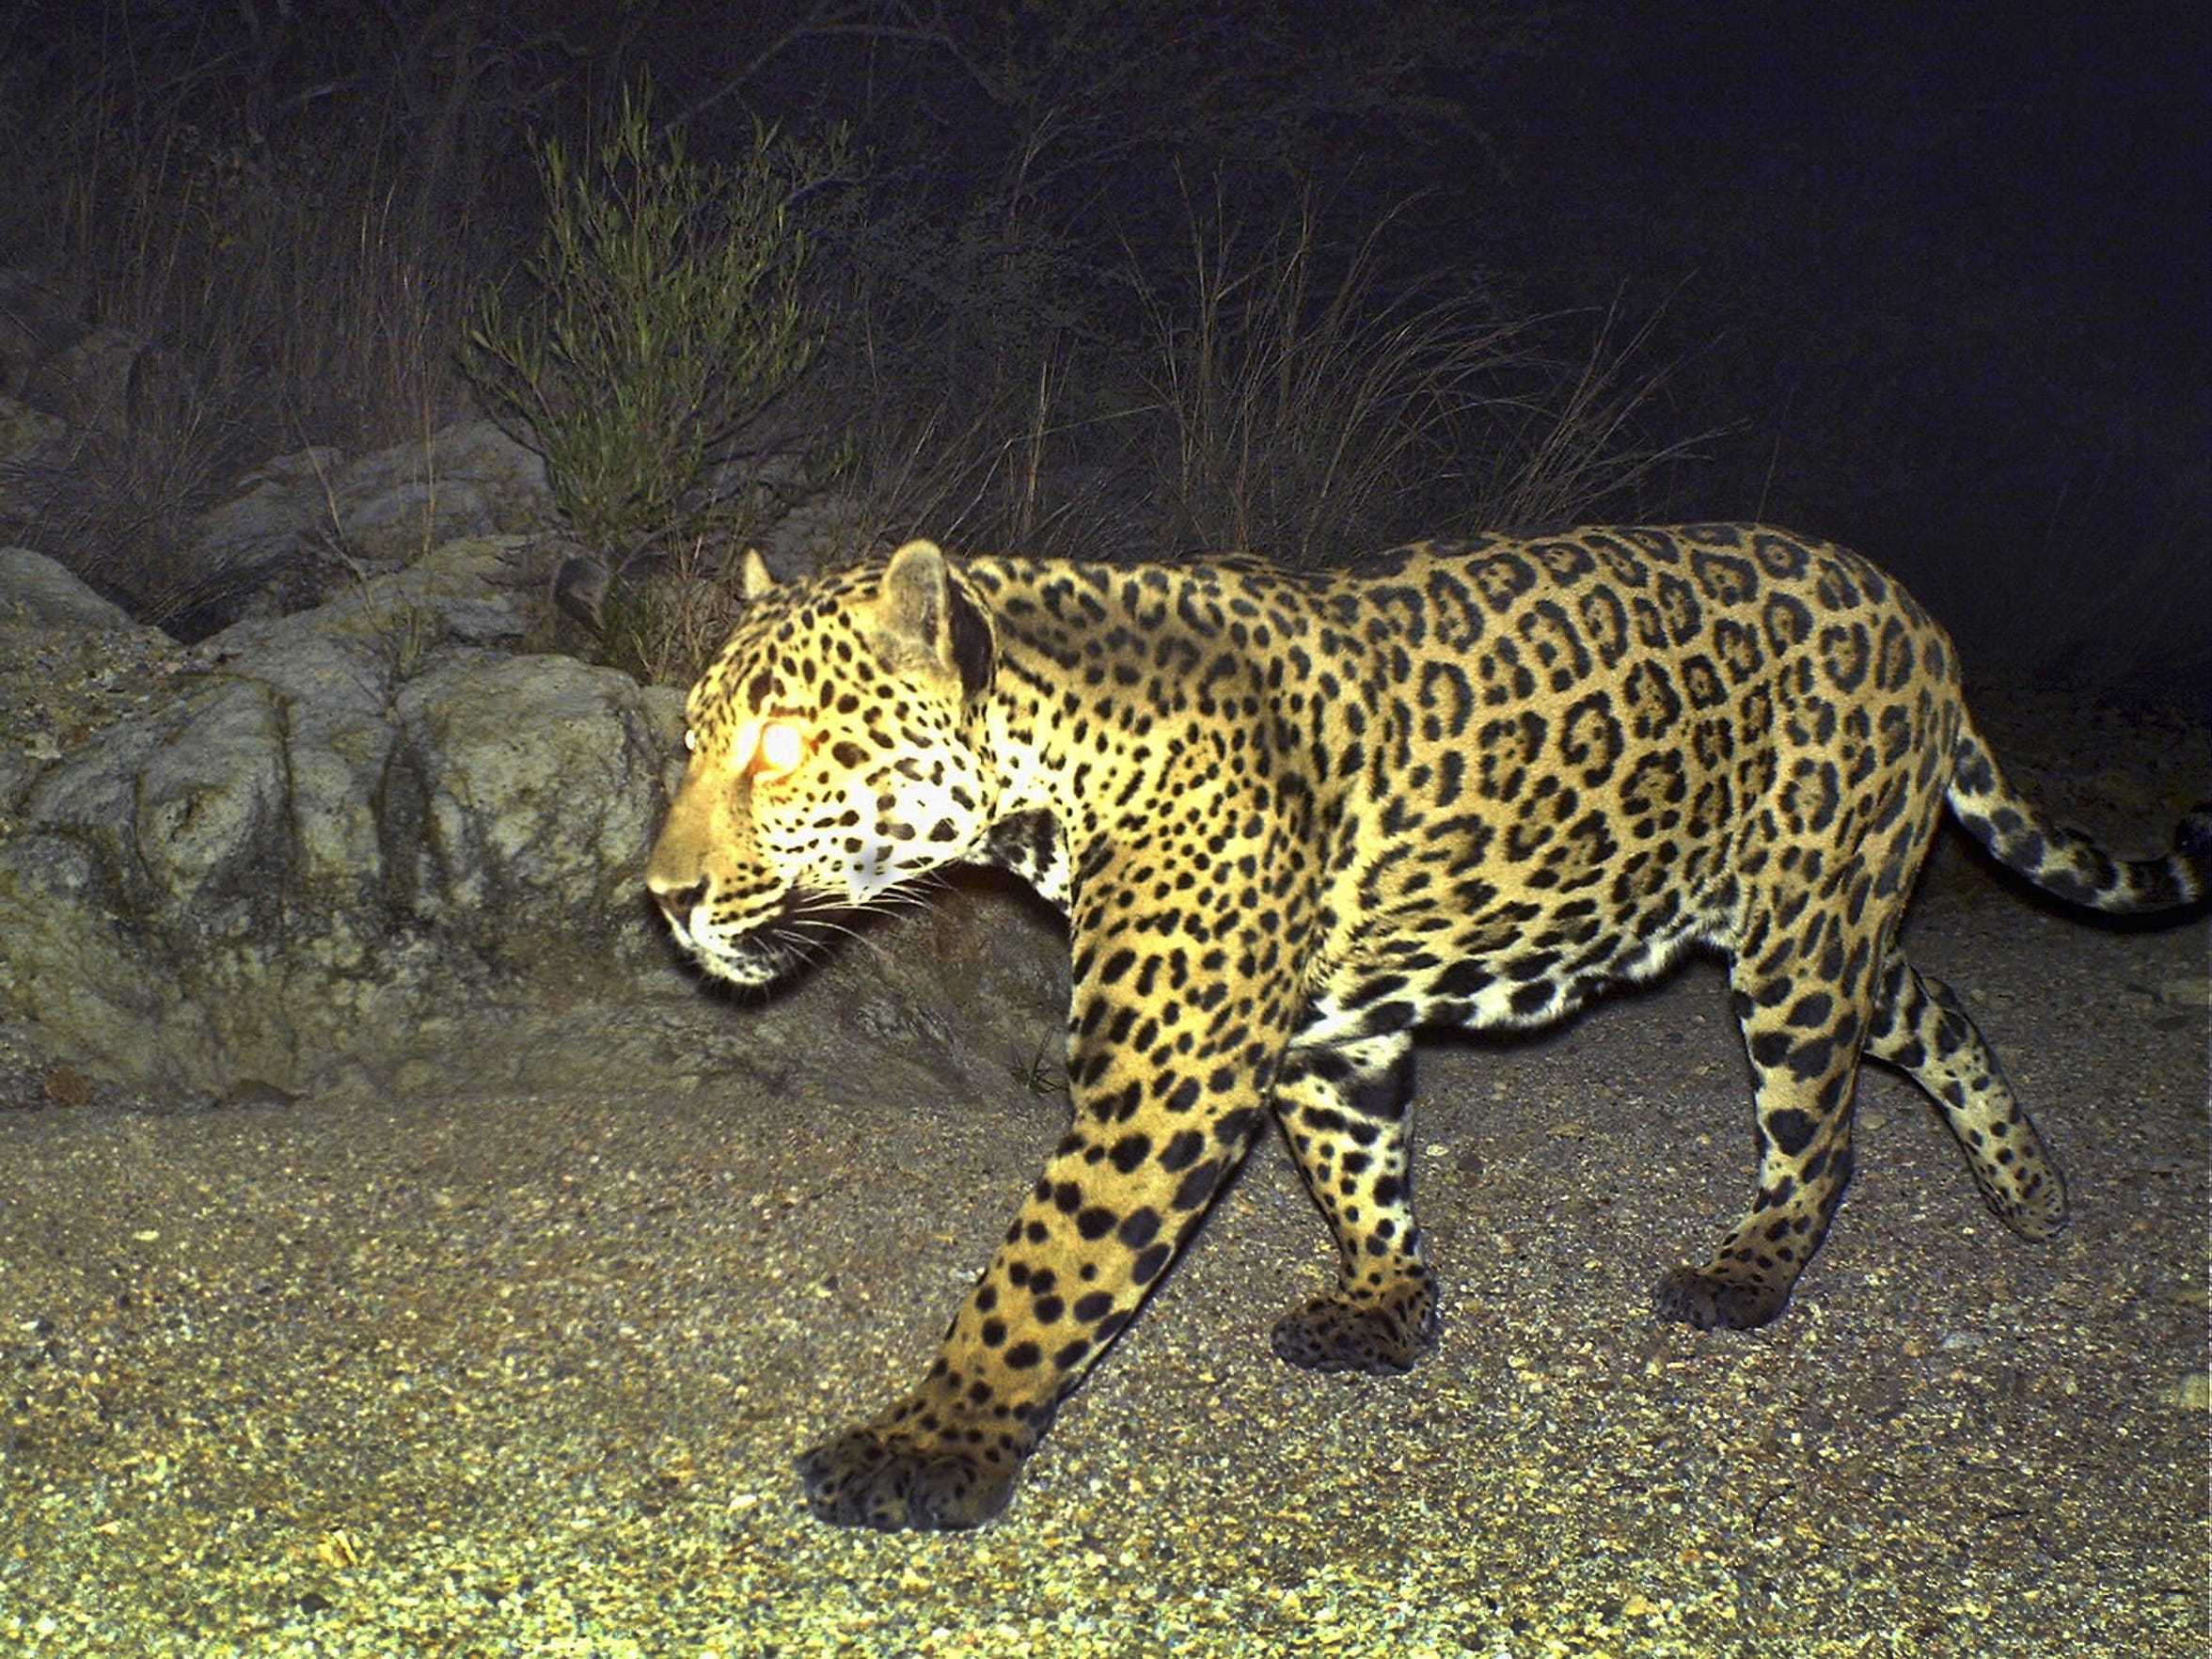 Male jaguar Mayo at the Northern Jaguar Reserve in